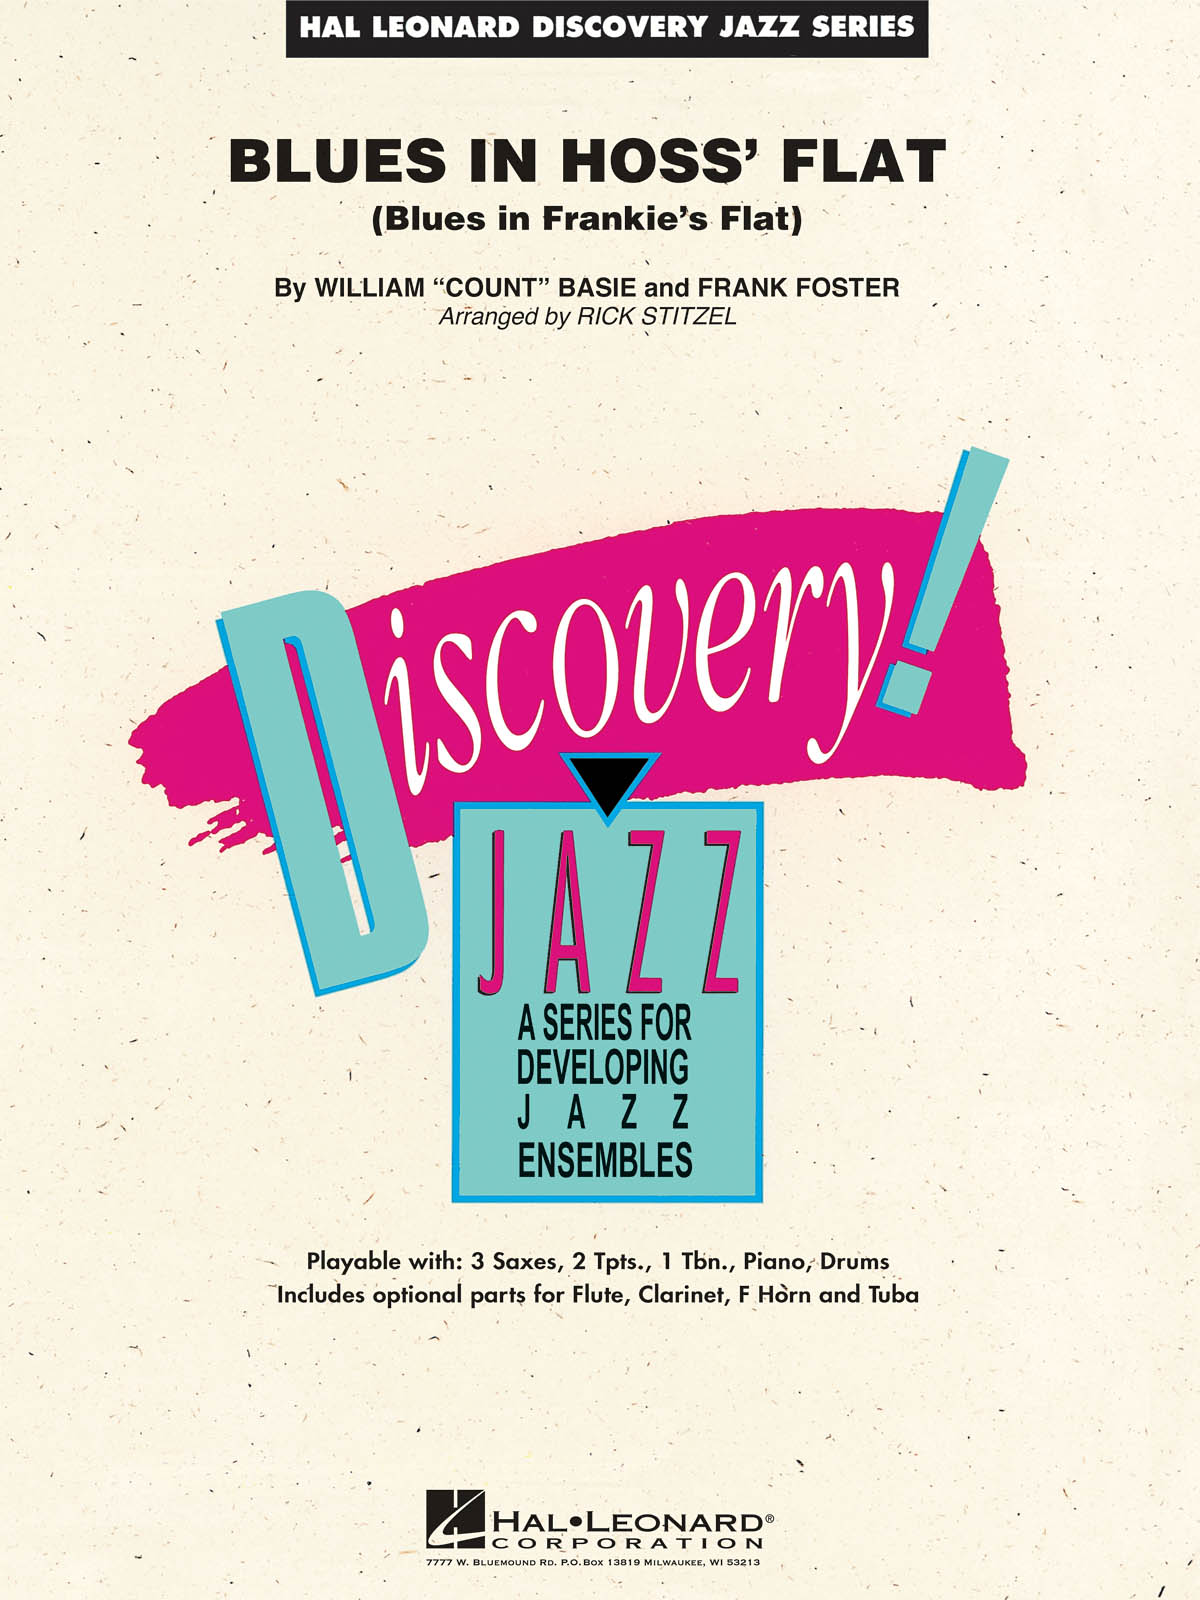 Blues In Hoss' Flat (Blues In Frankie's Flat)-Discovery Jazz